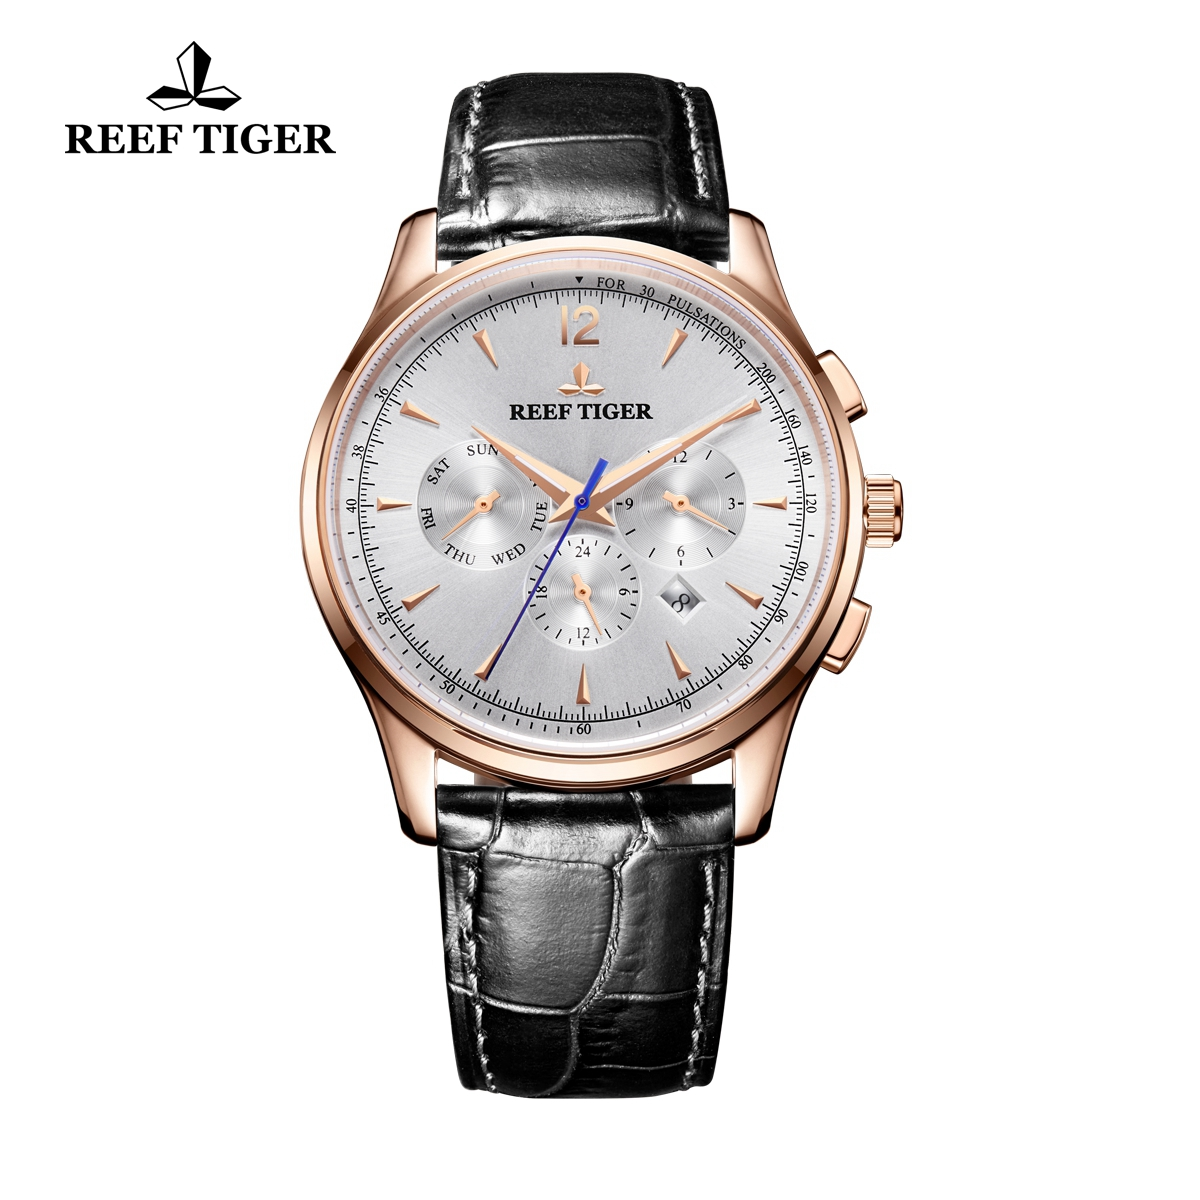 Reef Tiger Seattle Museum Fashion Automatic Watch Rose Gold White Dial Black Leather Strap RGA1654-PWB